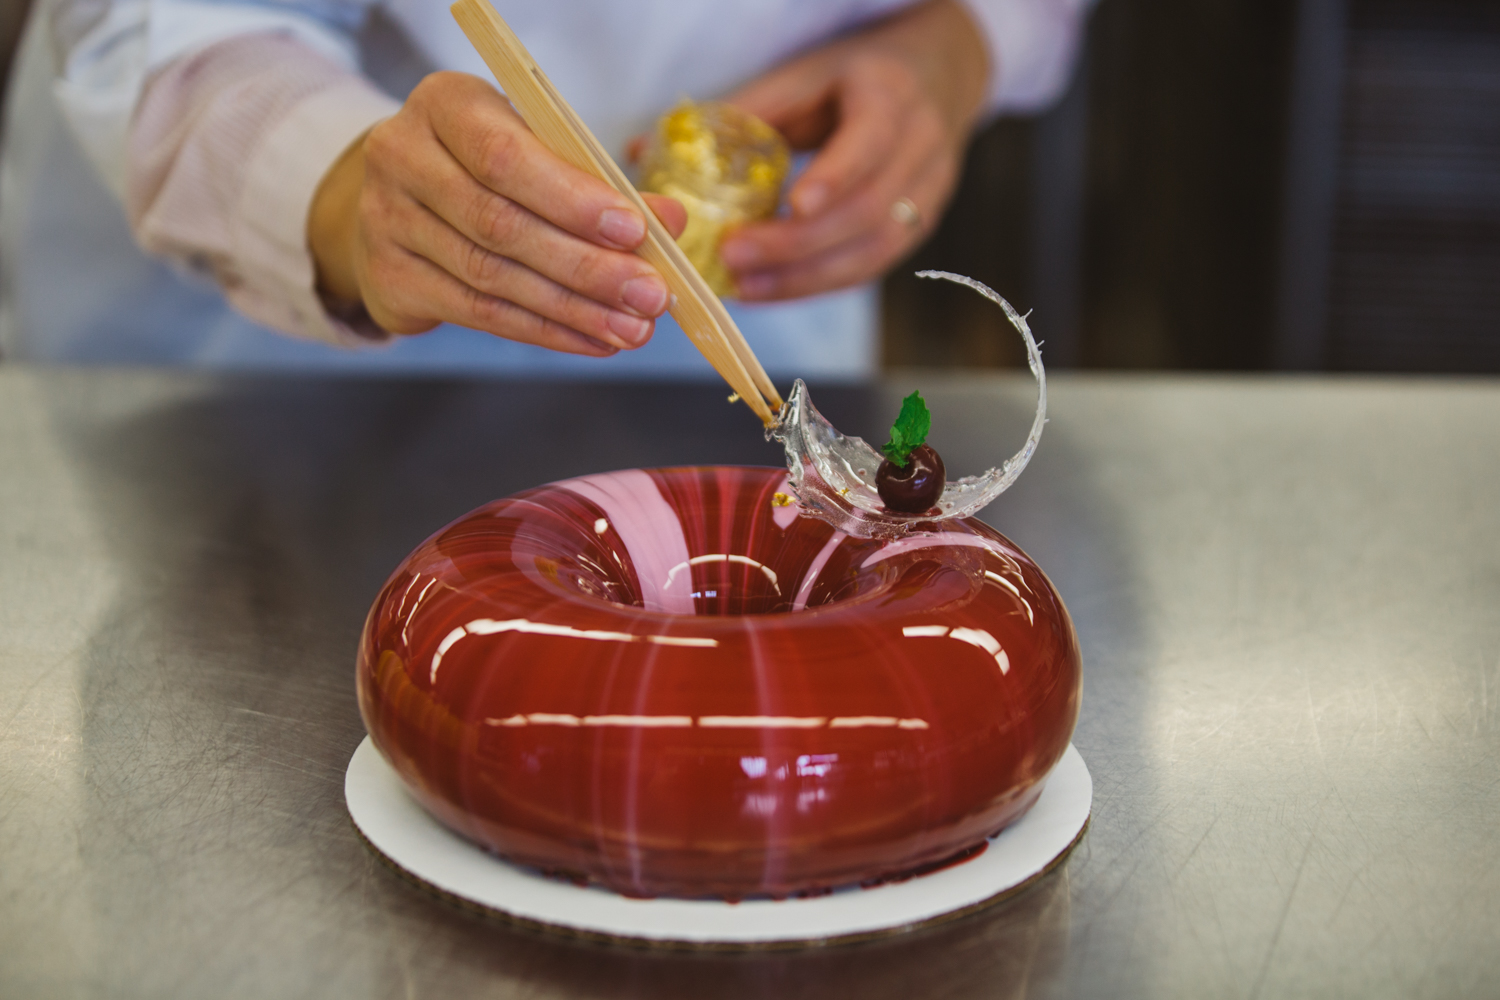 <p>Slowly and delicately poured over delicious mousse cakes, mirror glazing takes cake aesthetic to a whole new level. At Mousse Boutique, Anastasia Stratulat is a master as she carefully designs beautiful edible art pieces through her high quality minimalist designs. (Image: Ryan McBoyle / Seattle Refined)</p>